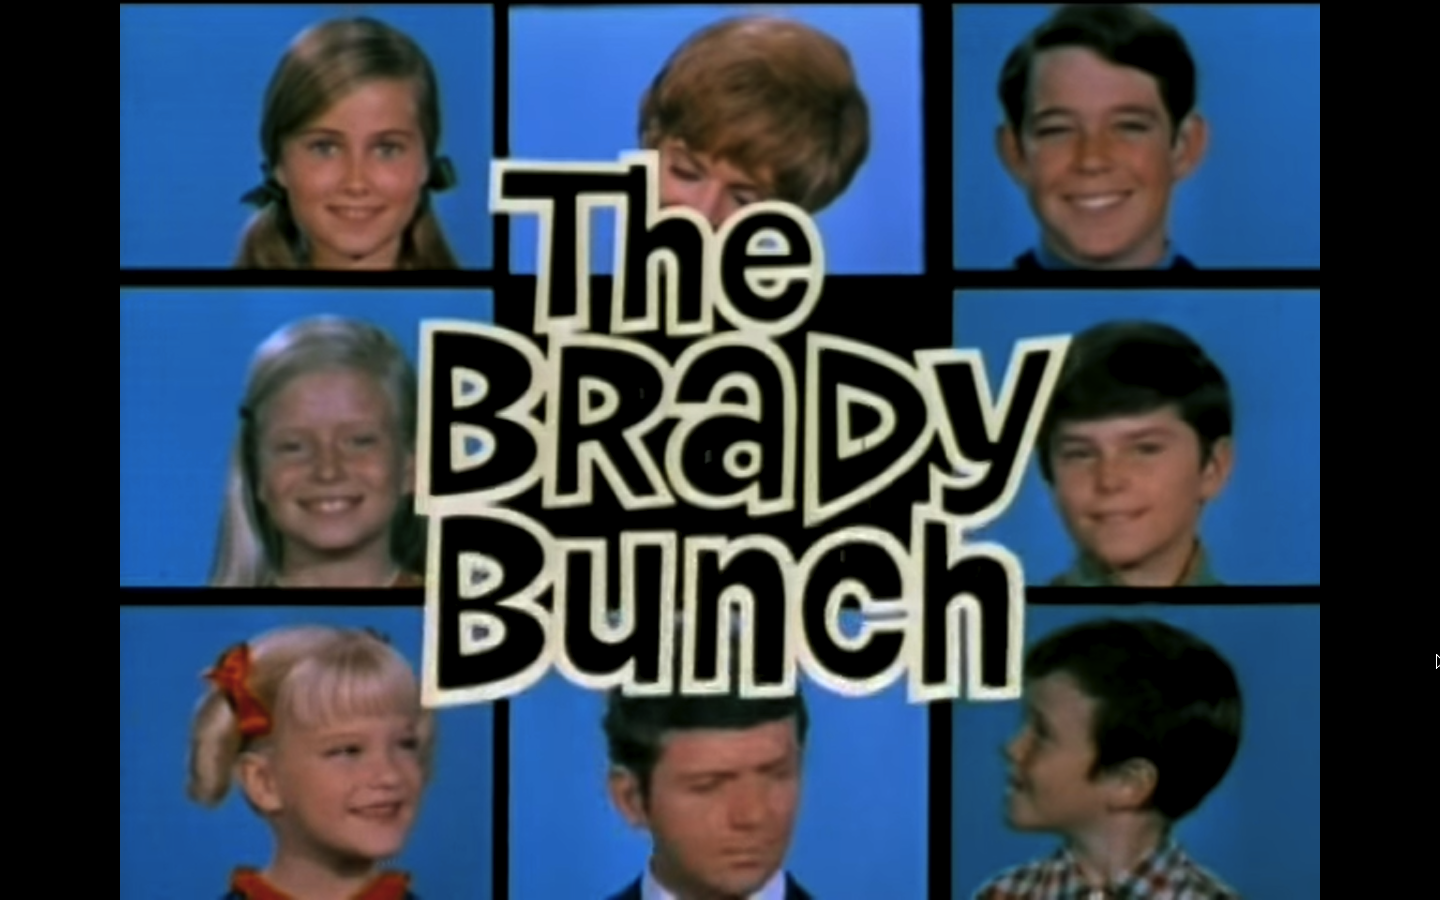 The Brady Bunch opening credits.